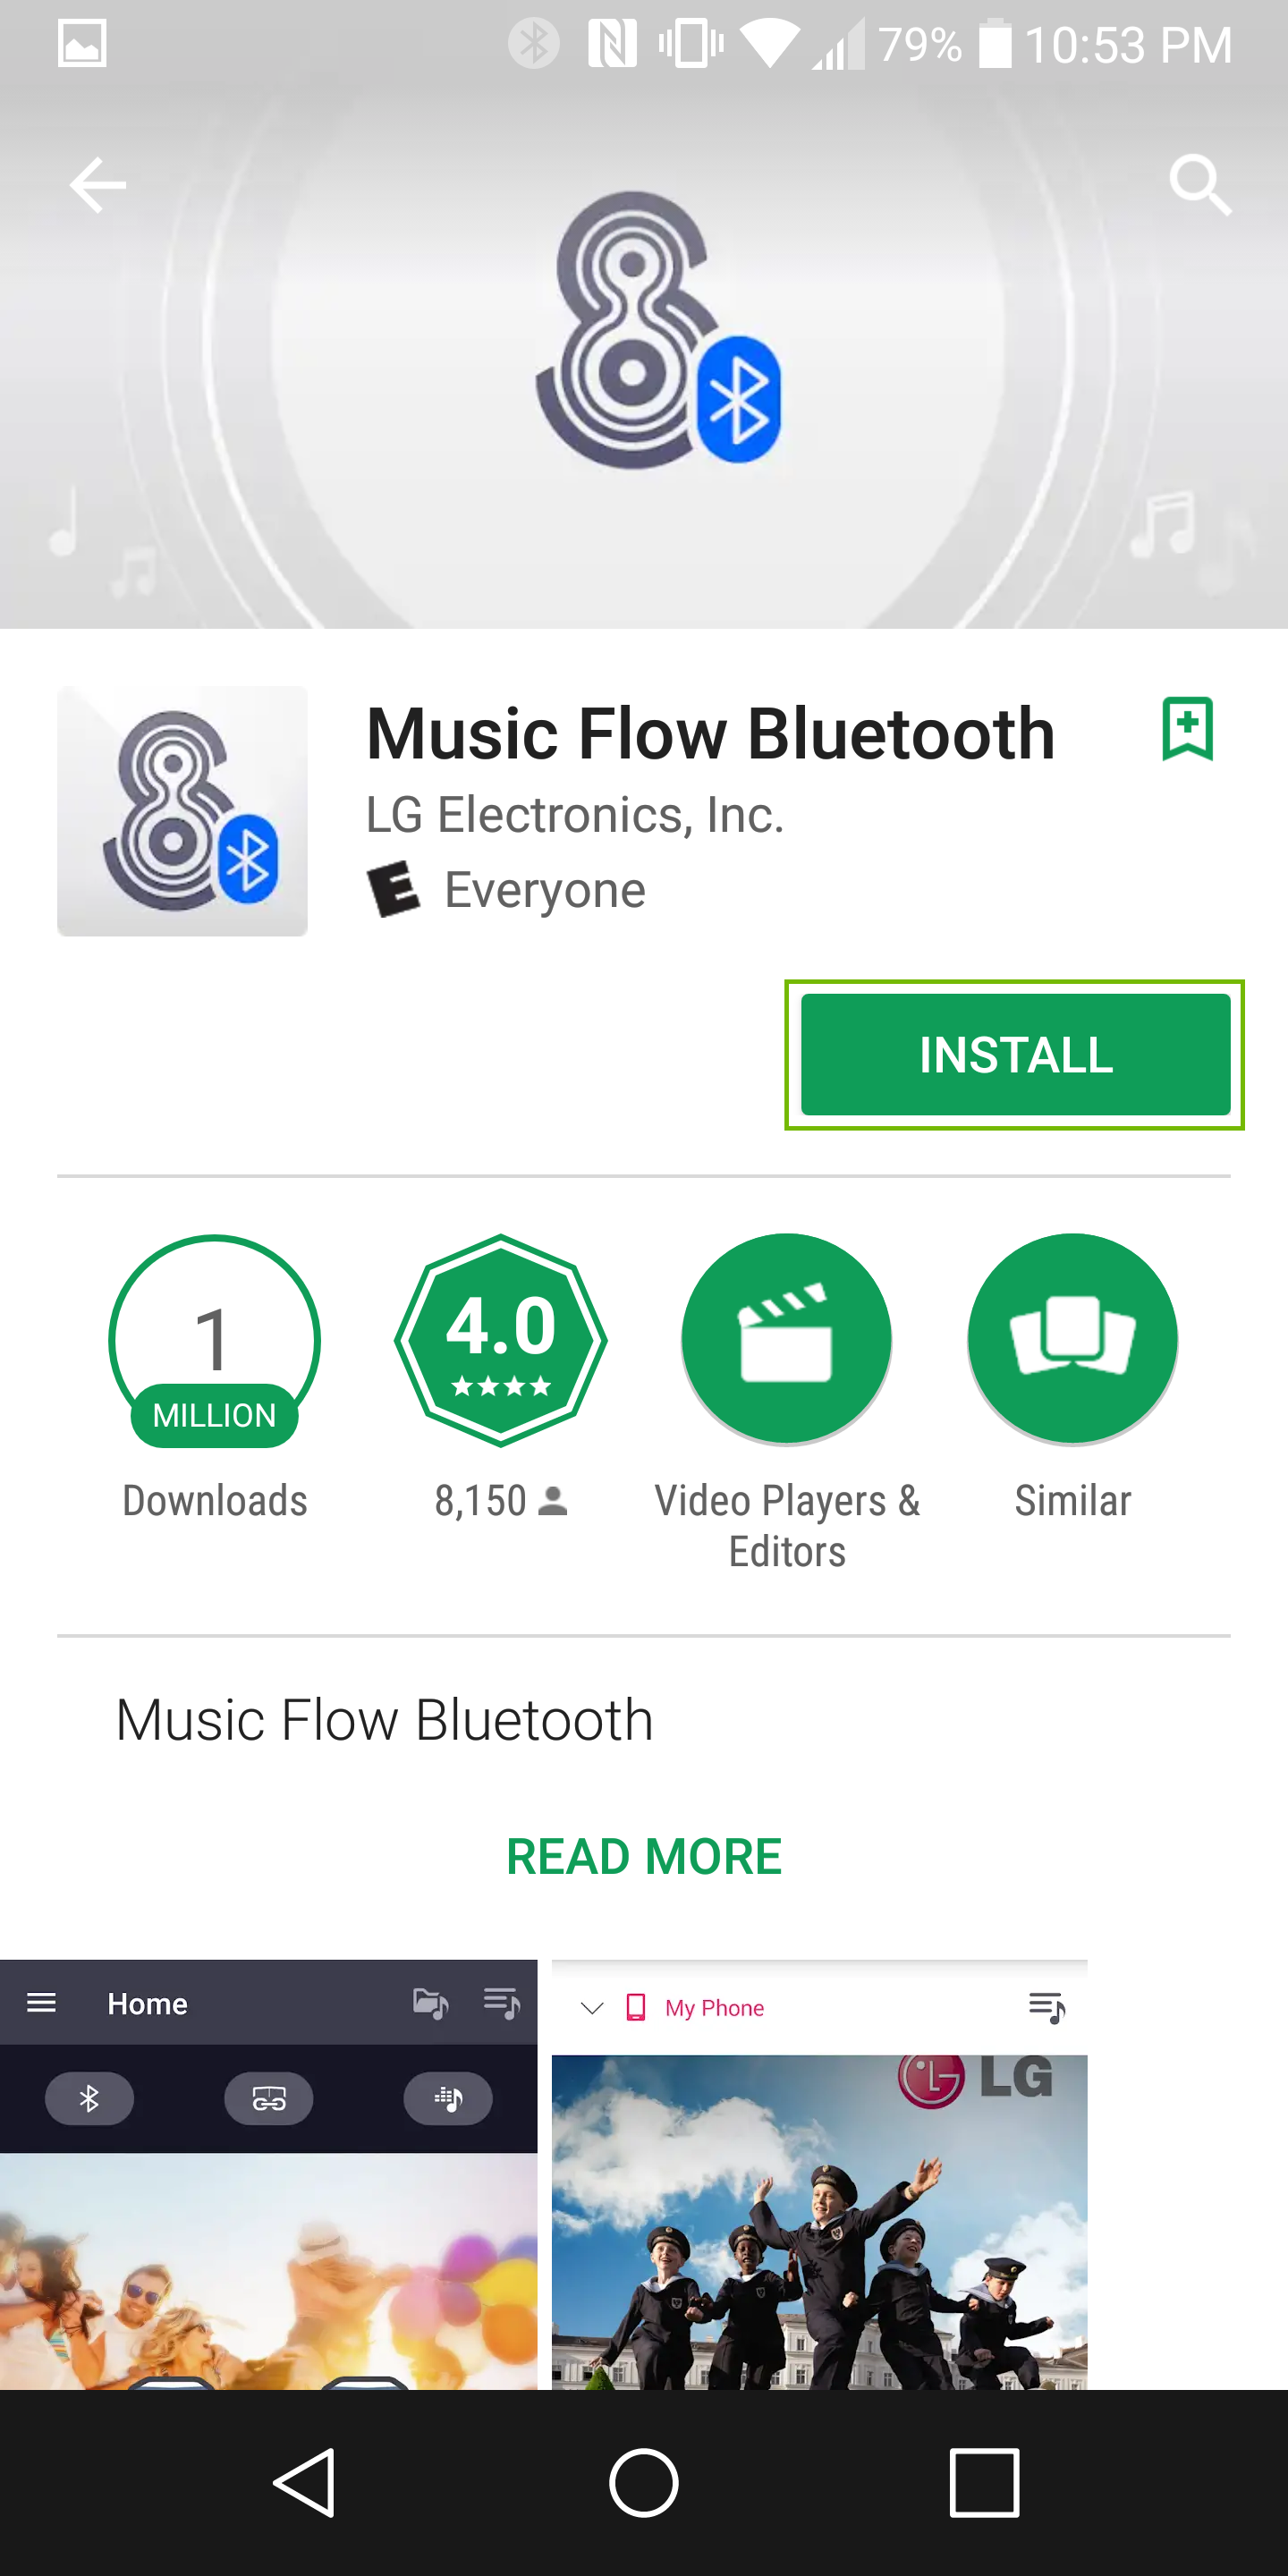 Screenshot of music flow bluetooth app install screen with install highlighted